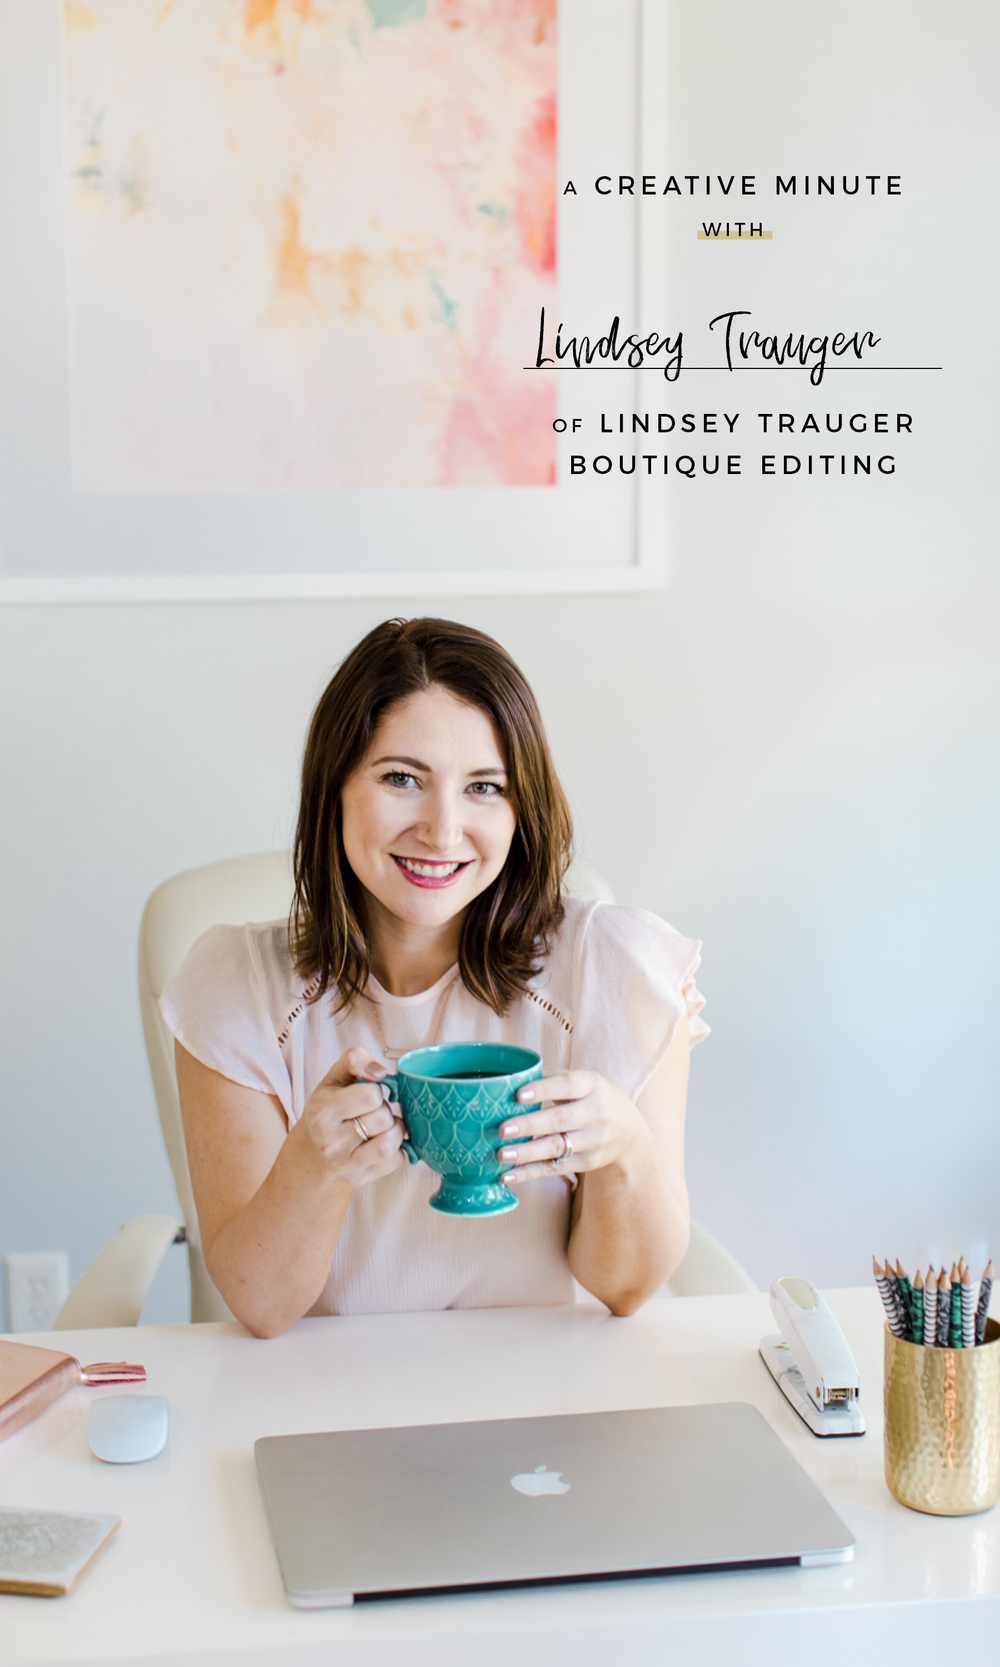 A Creative Minute With... Lindsey Trauger of Lindsey Trauger Boutique Editing